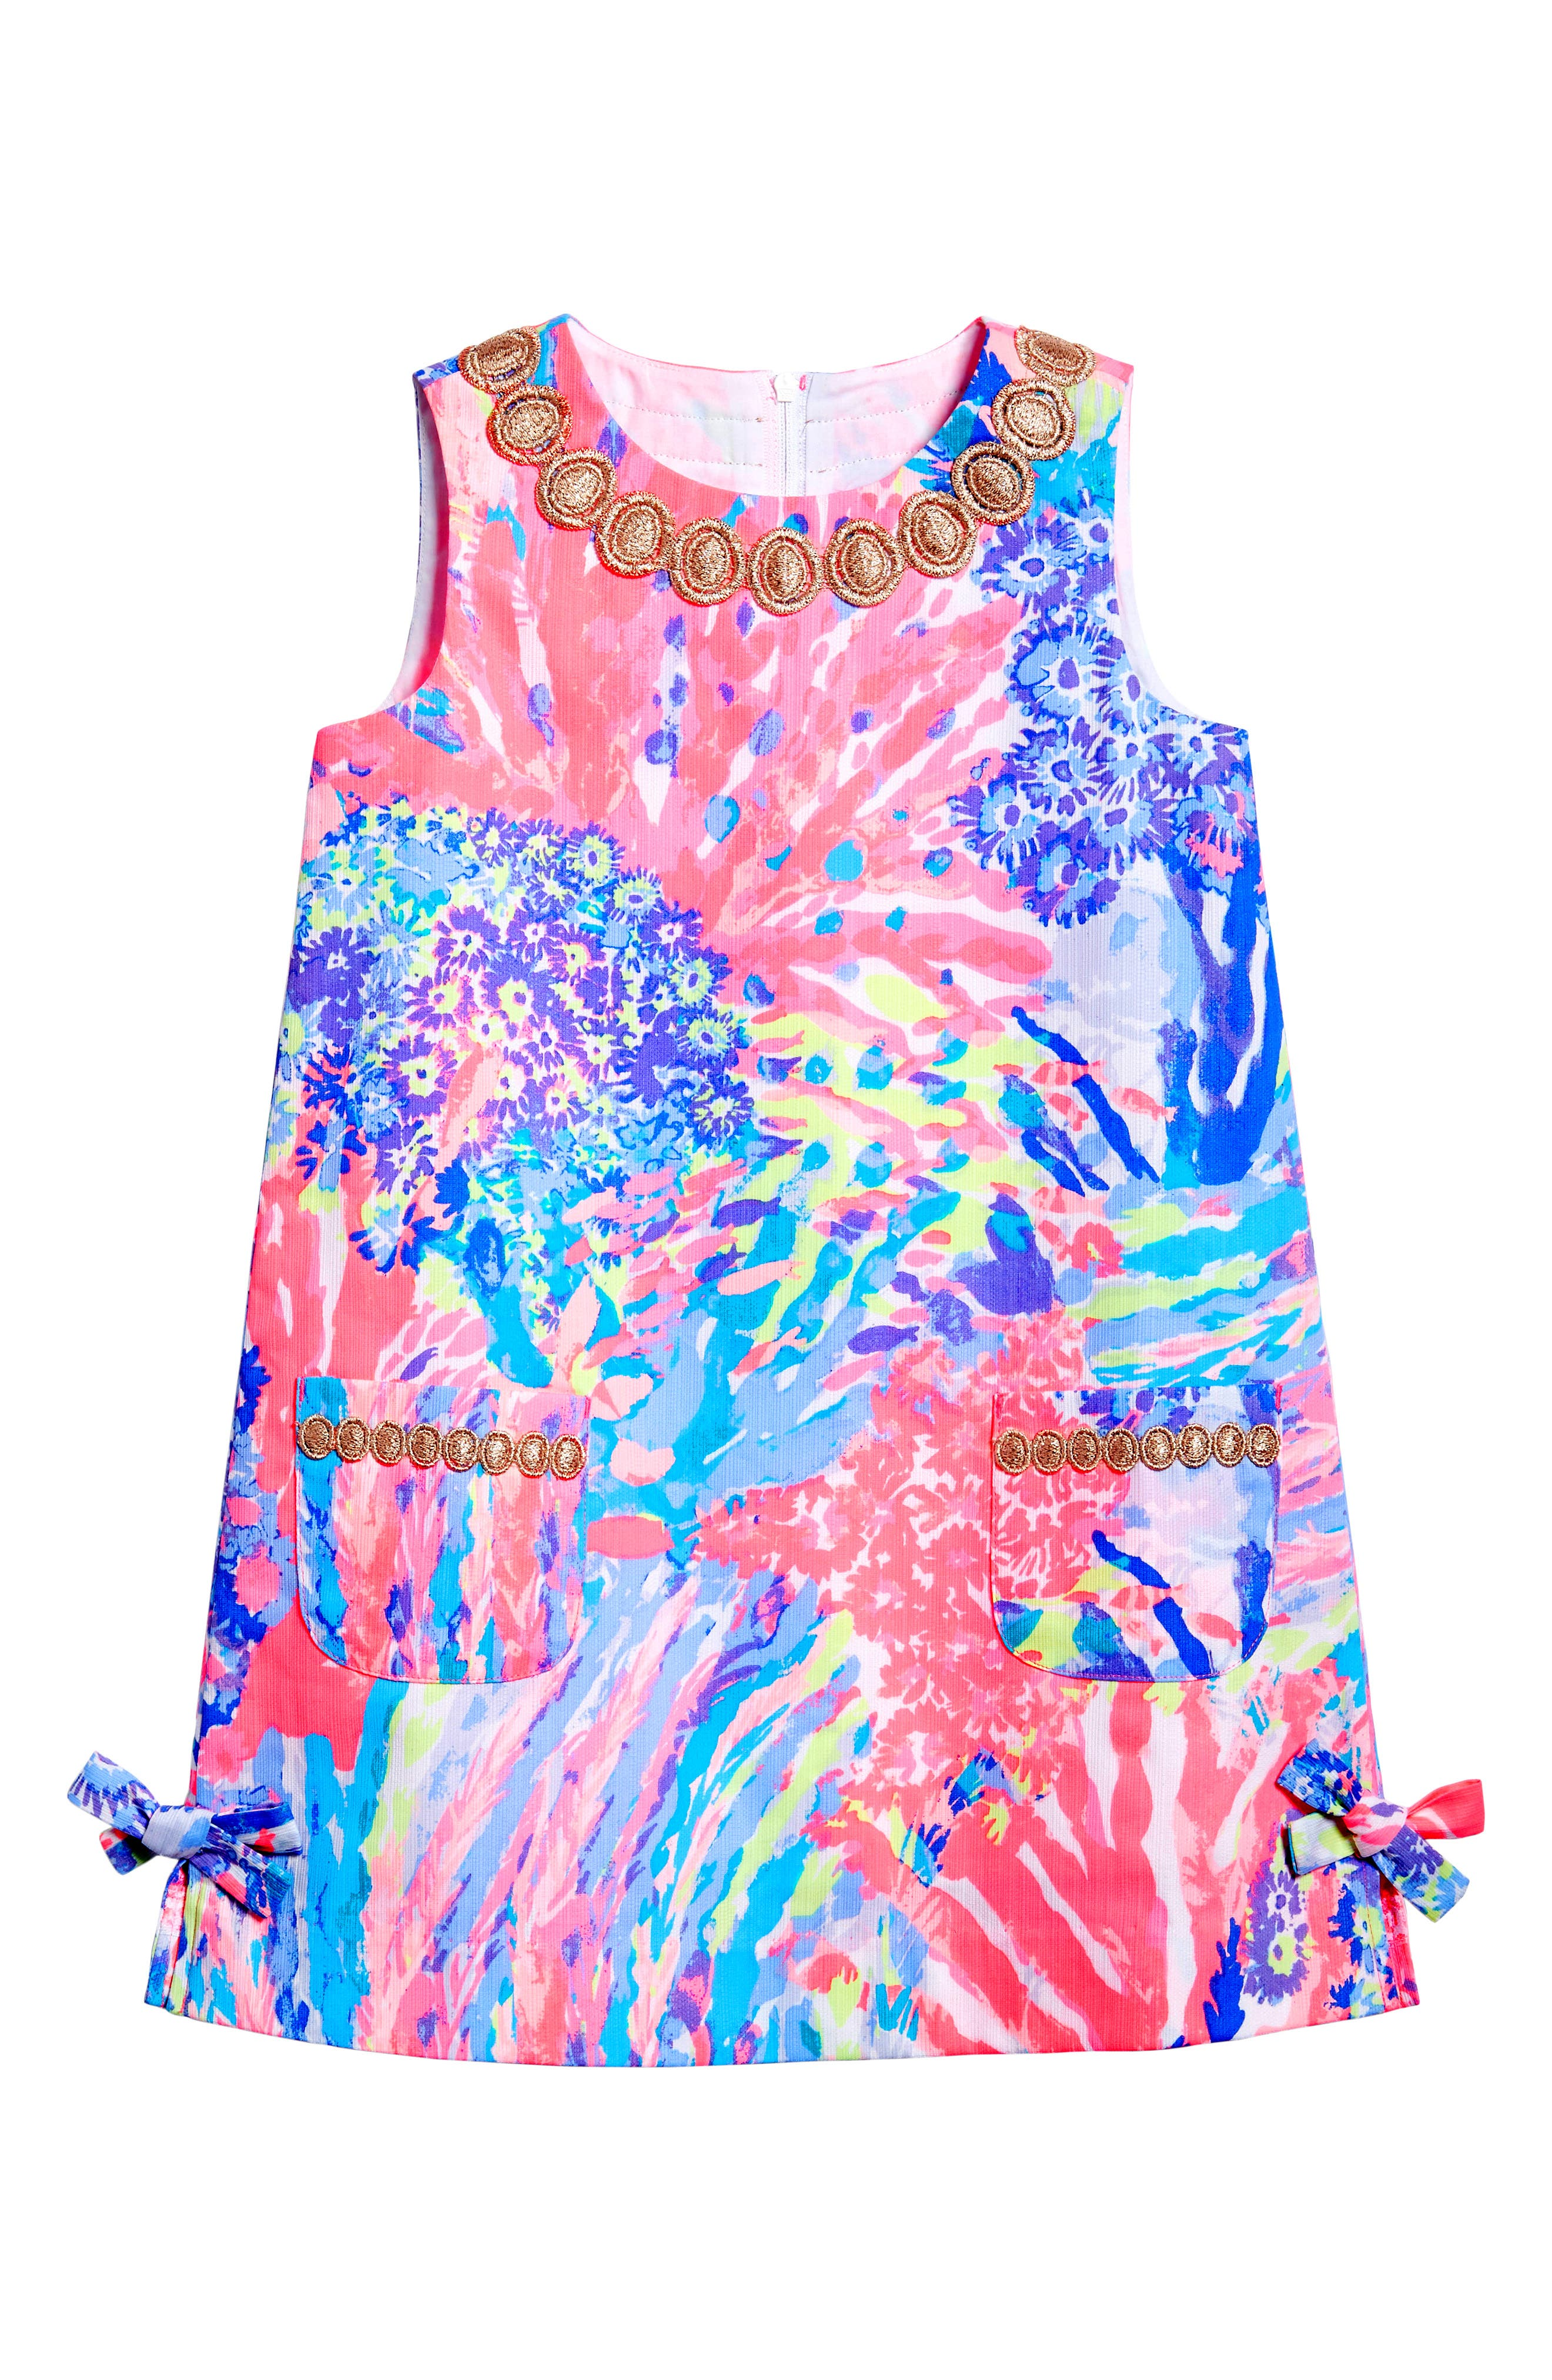 Little Lilly Shift Dress,                             Main thumbnail 1, color,                             659